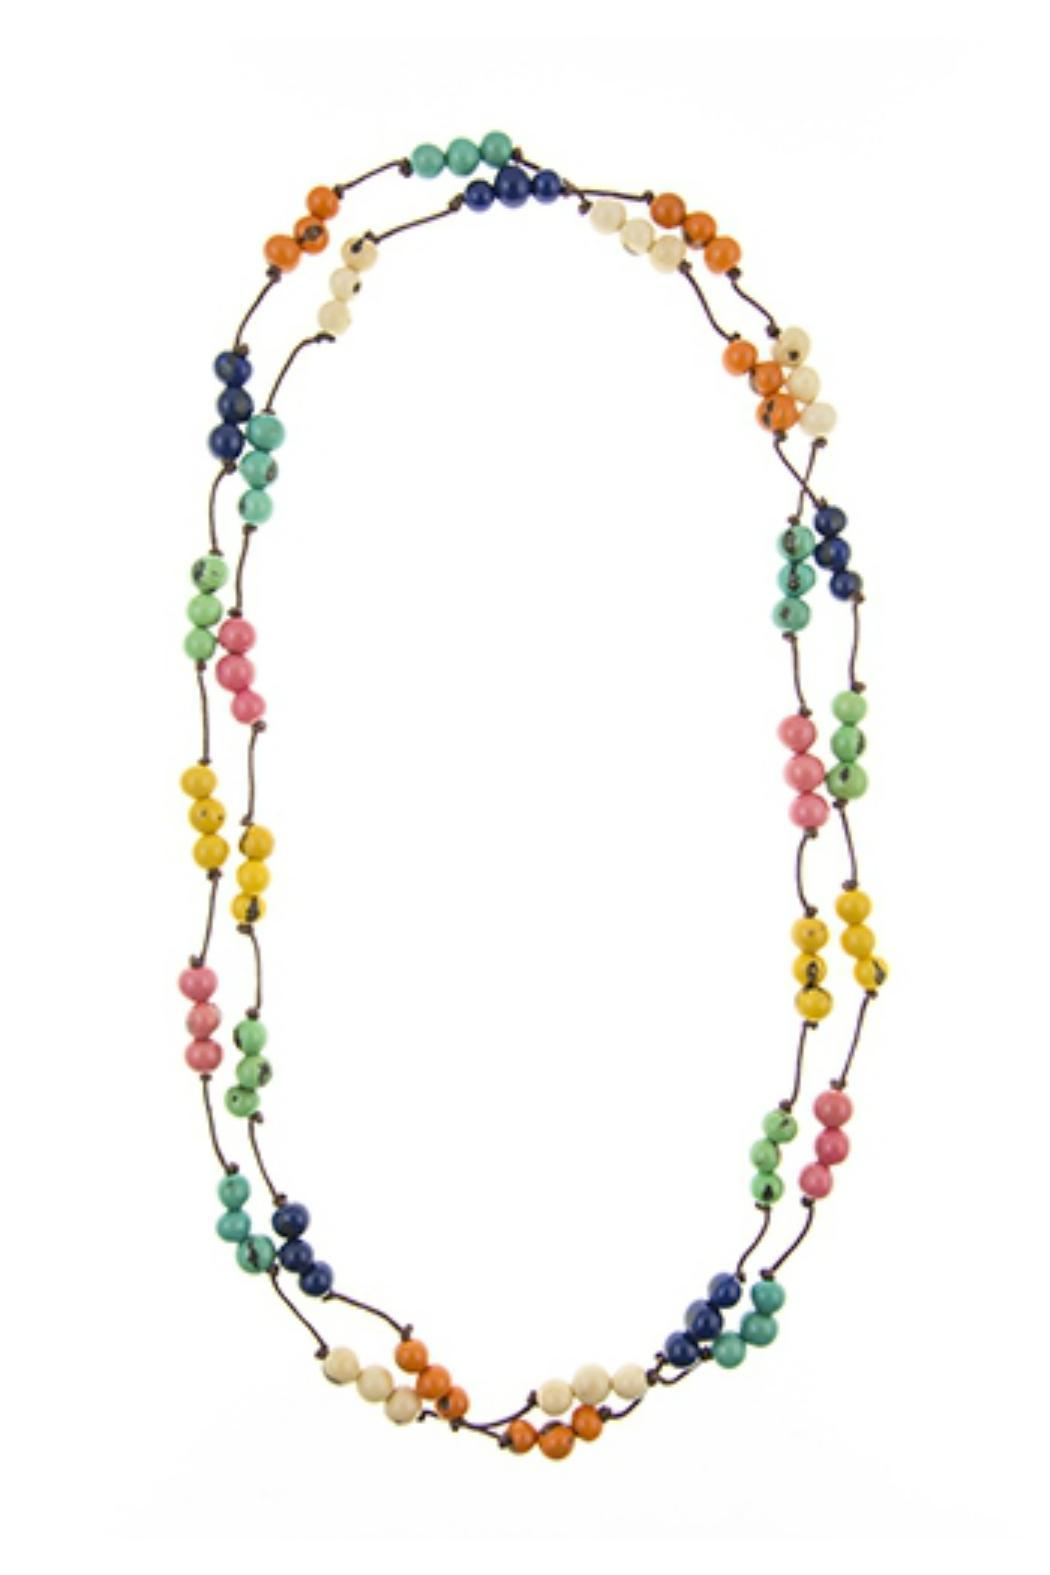 organic tagua jewelry montnita necklace from virginia by